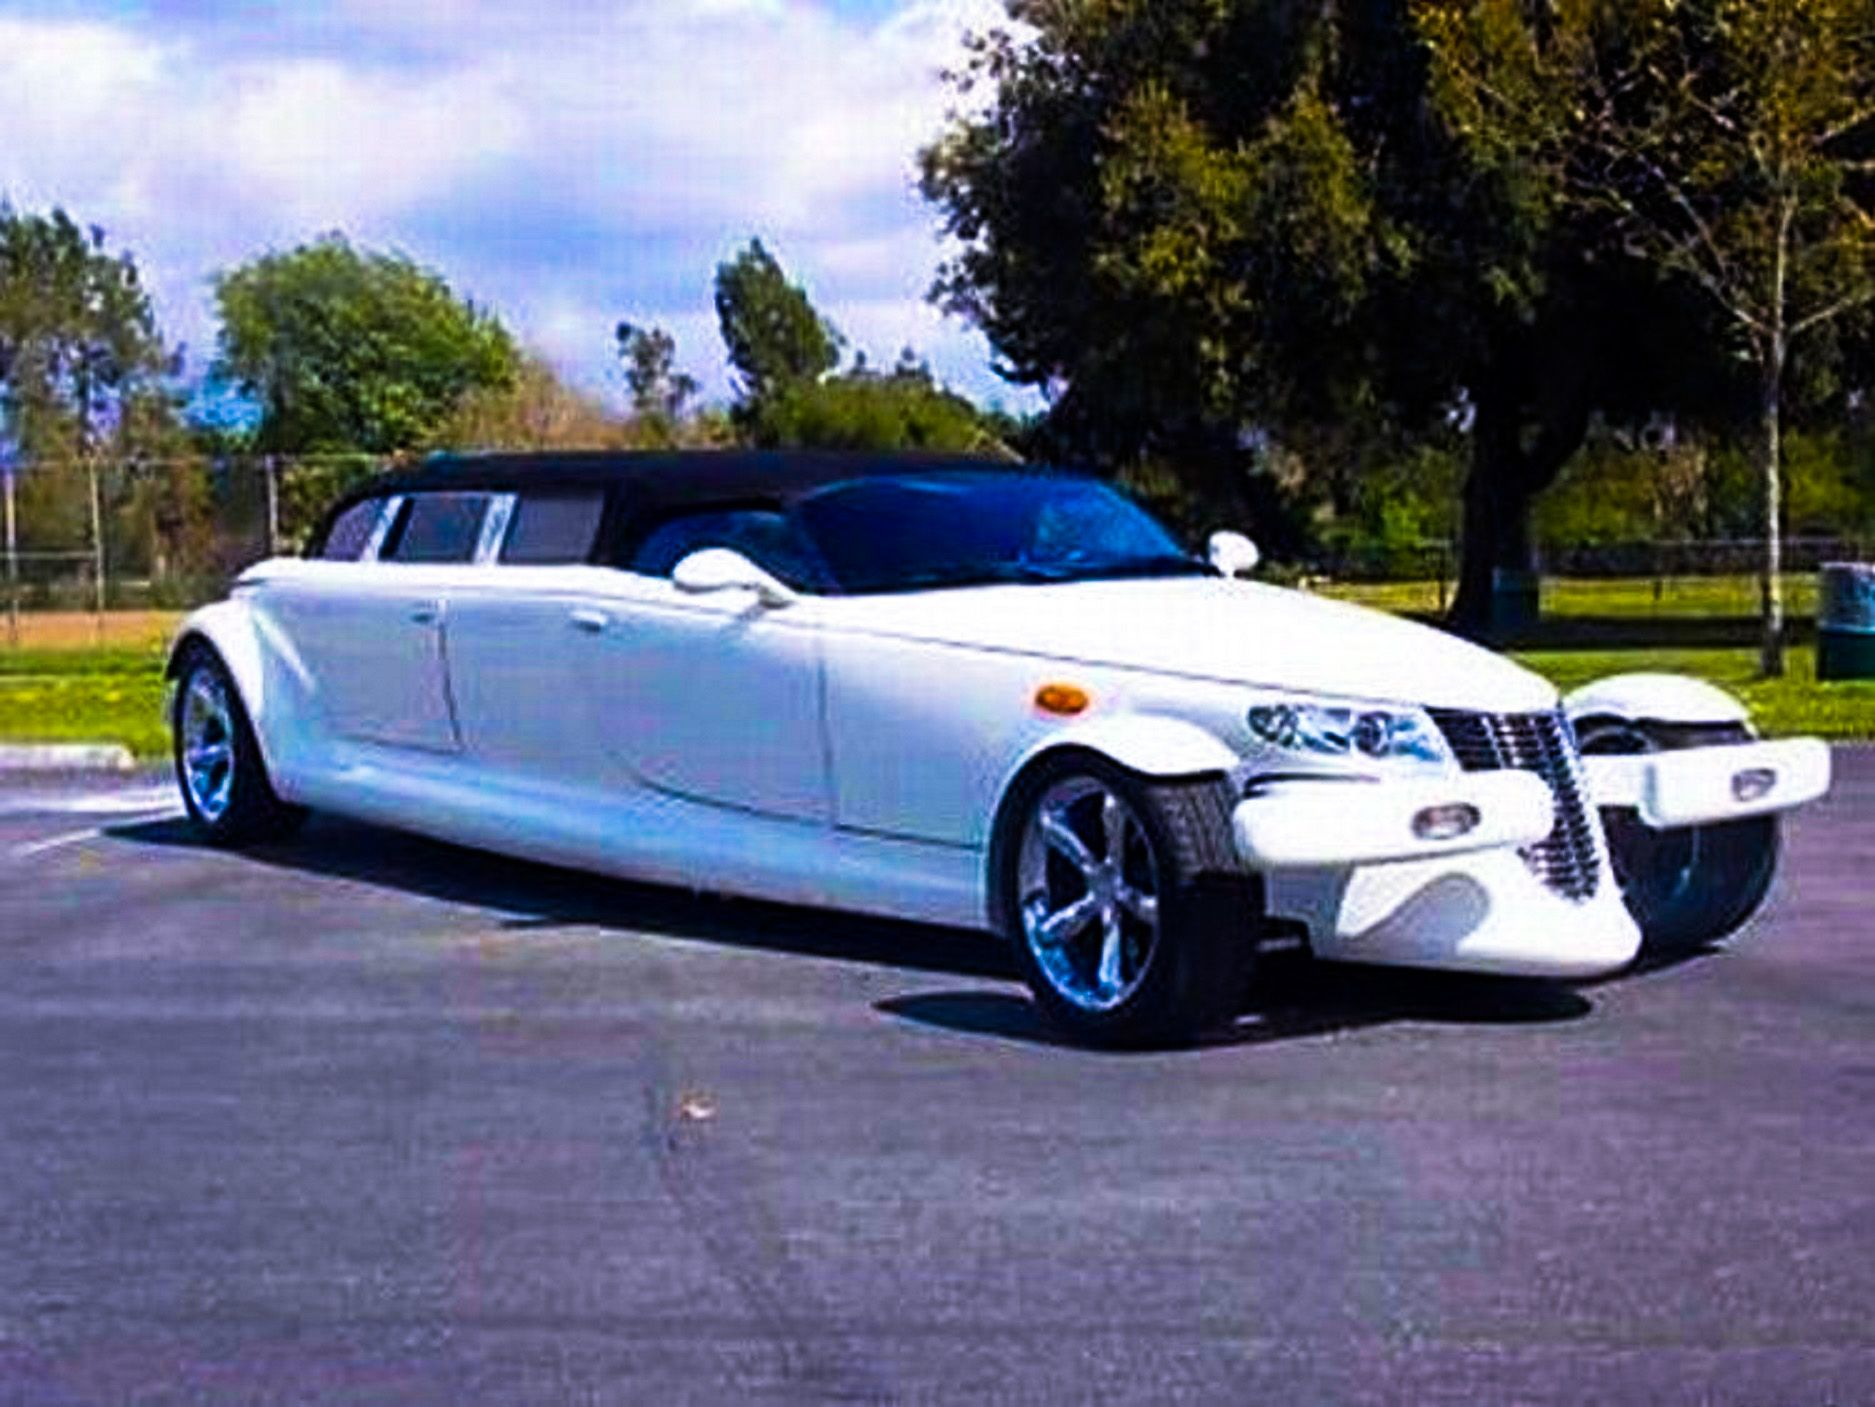 Plymouth Prowler Stretched Limousine big limos custom